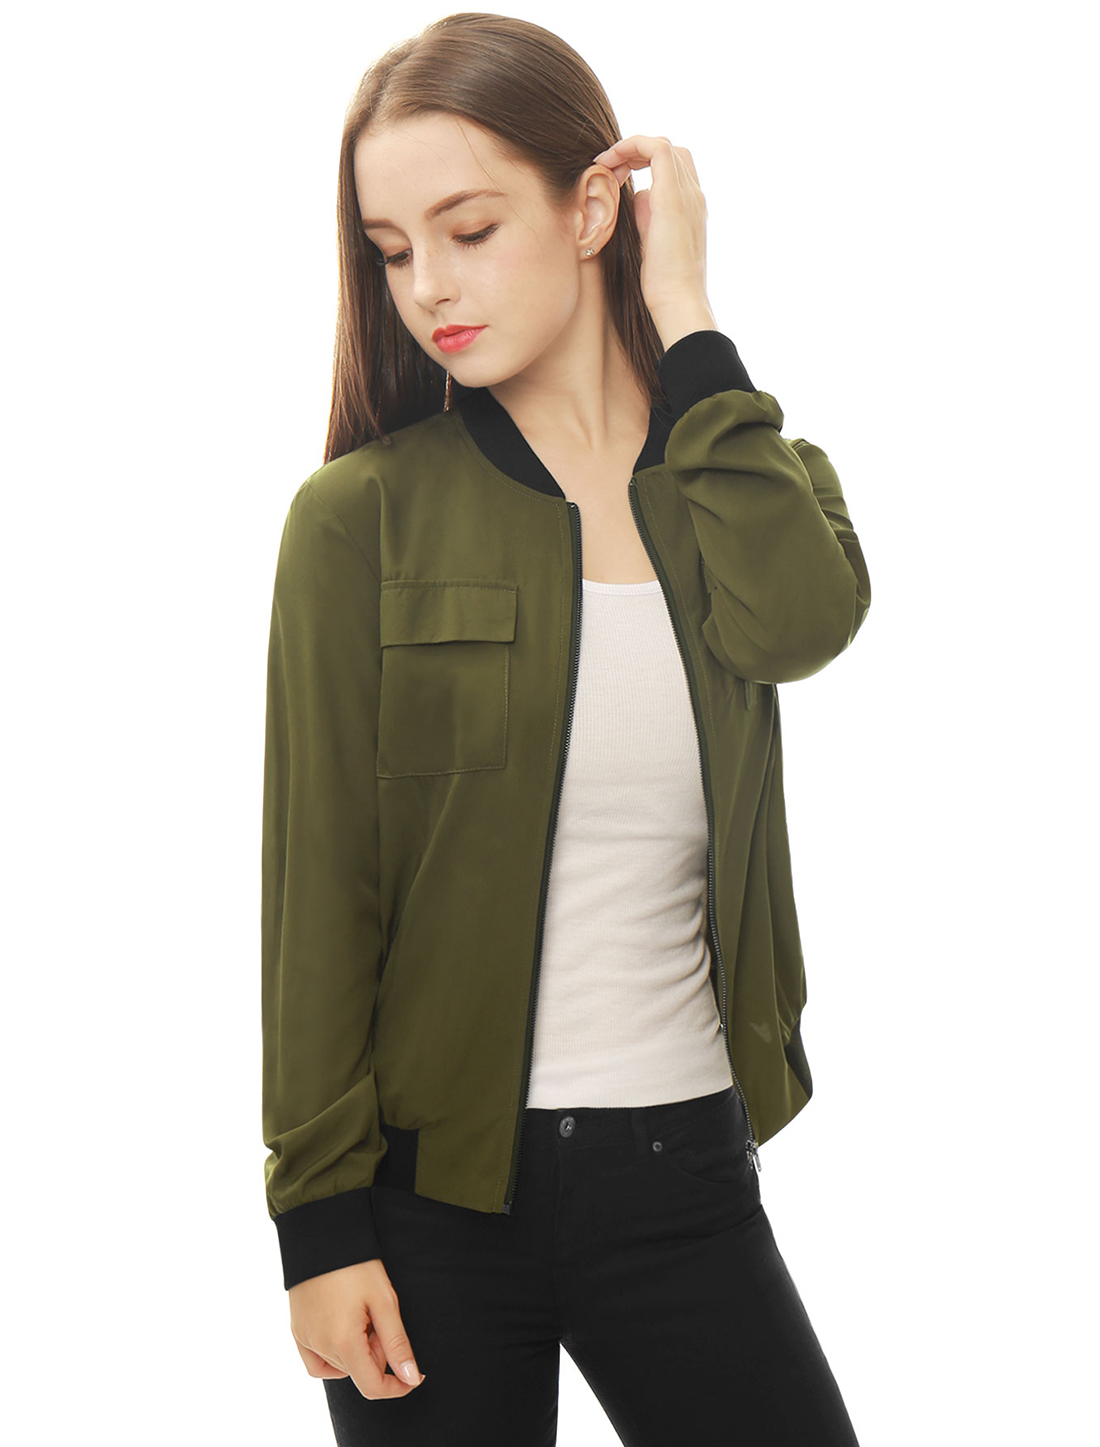 Allegra K Women Multi-Pocket Zip Fastening Front Bomber Jacket Green XL